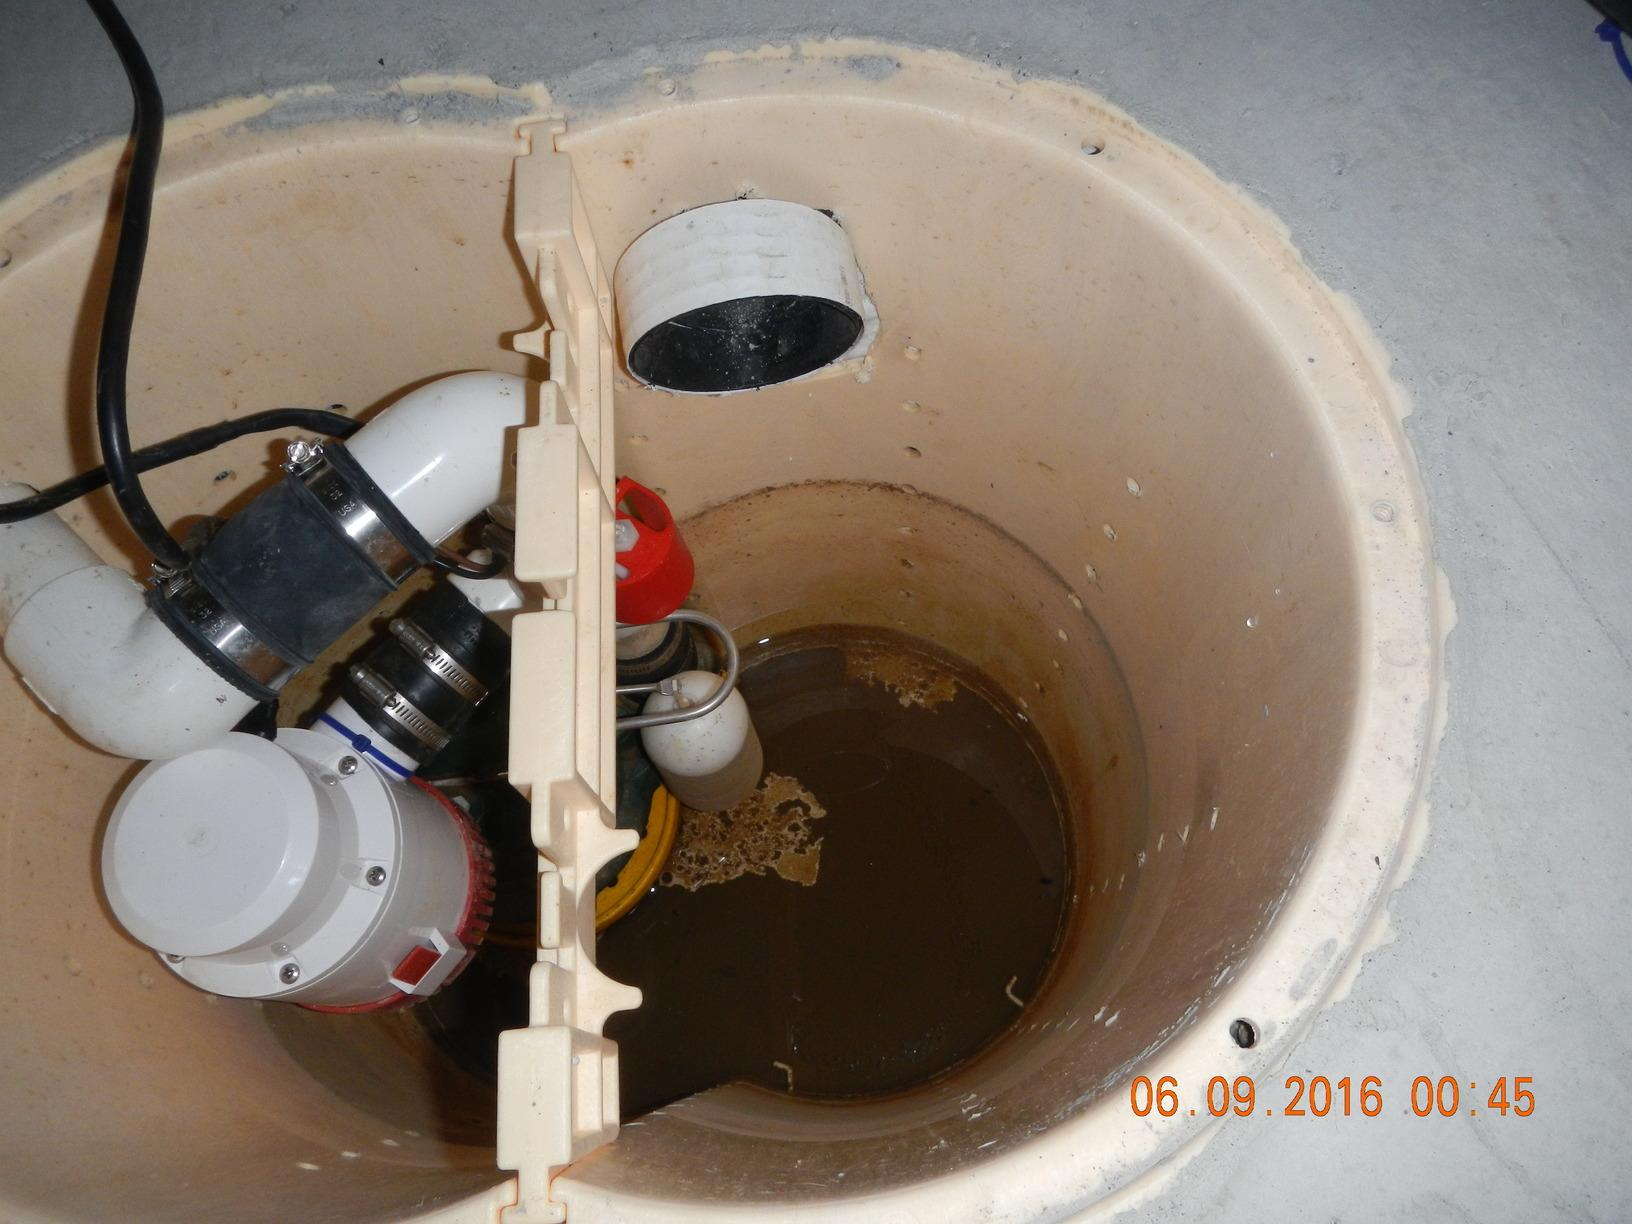 Annual Sump Pump Service in Anacortes Crawl Space - Before Photo